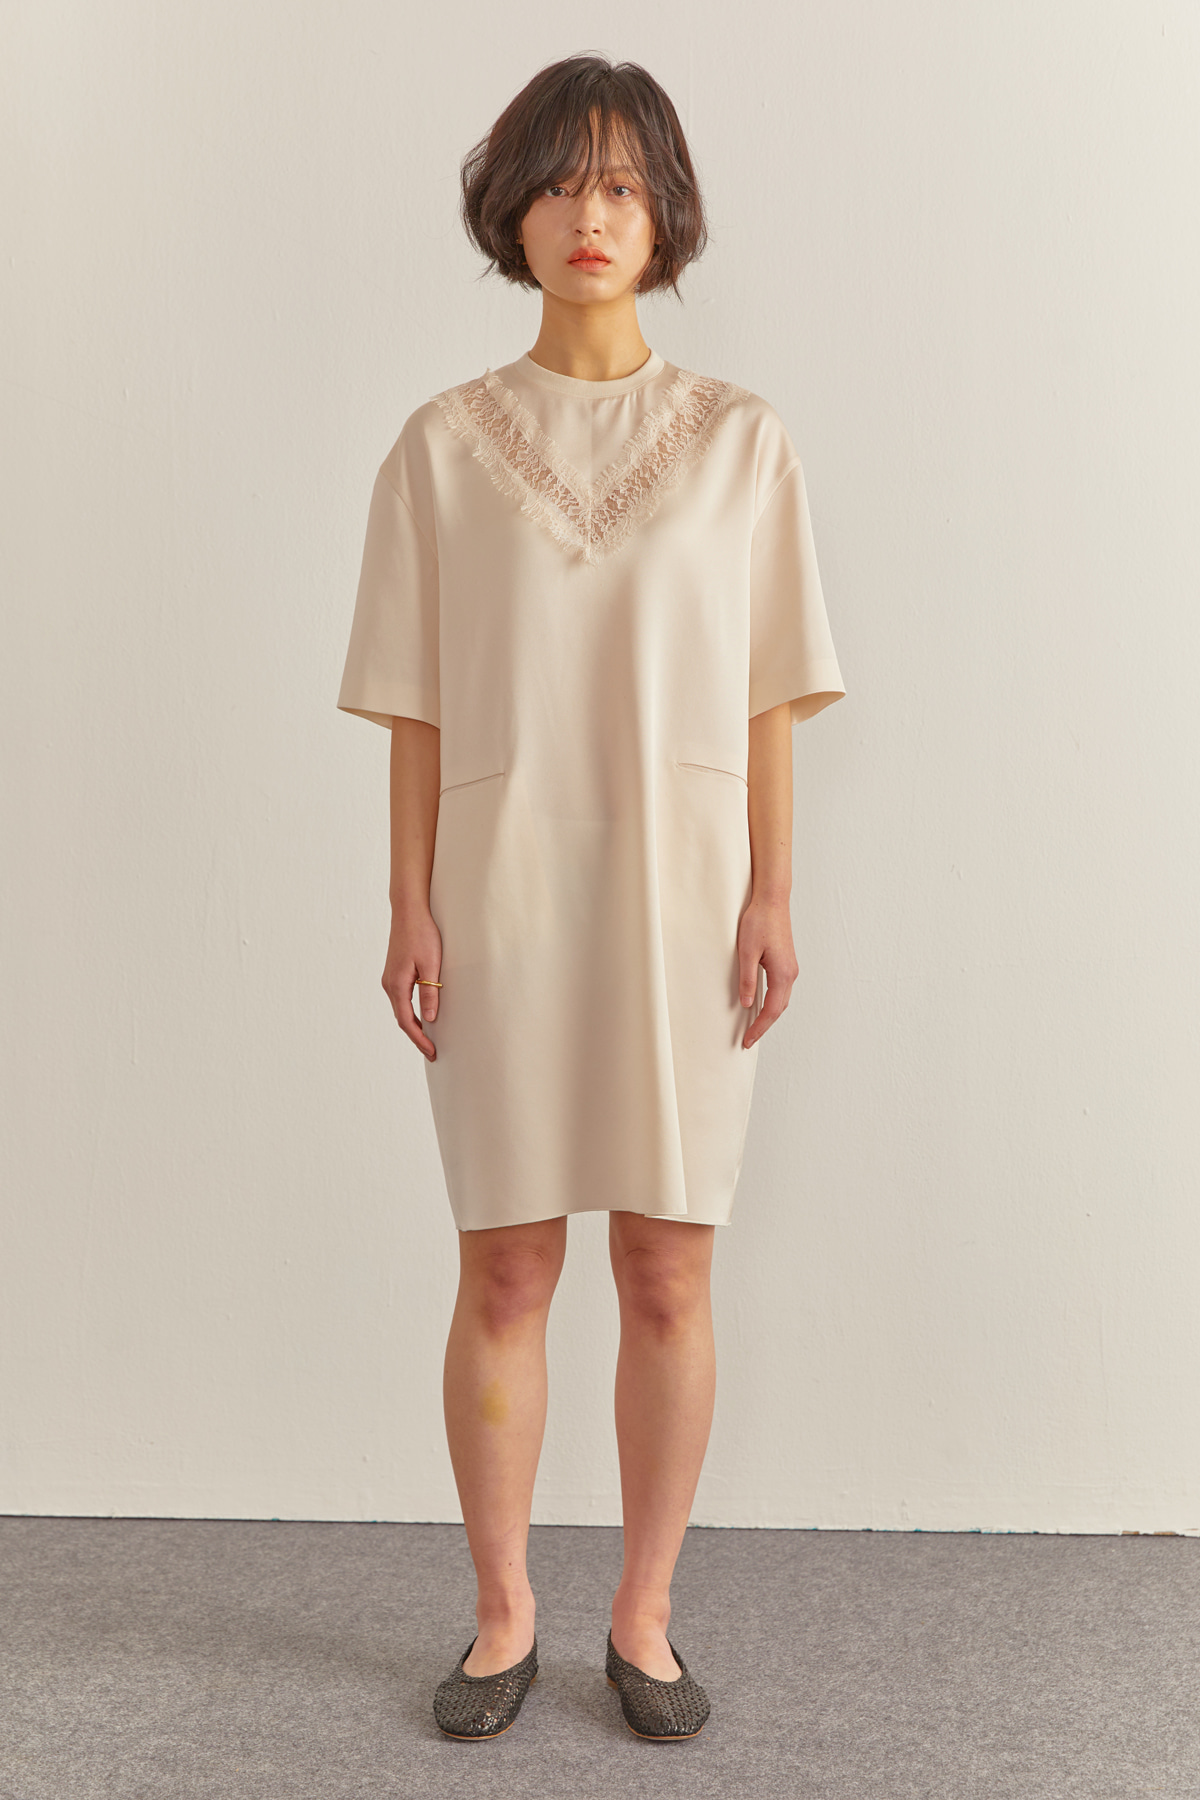 Glossy Coccoon Silhouette Dress Ivory